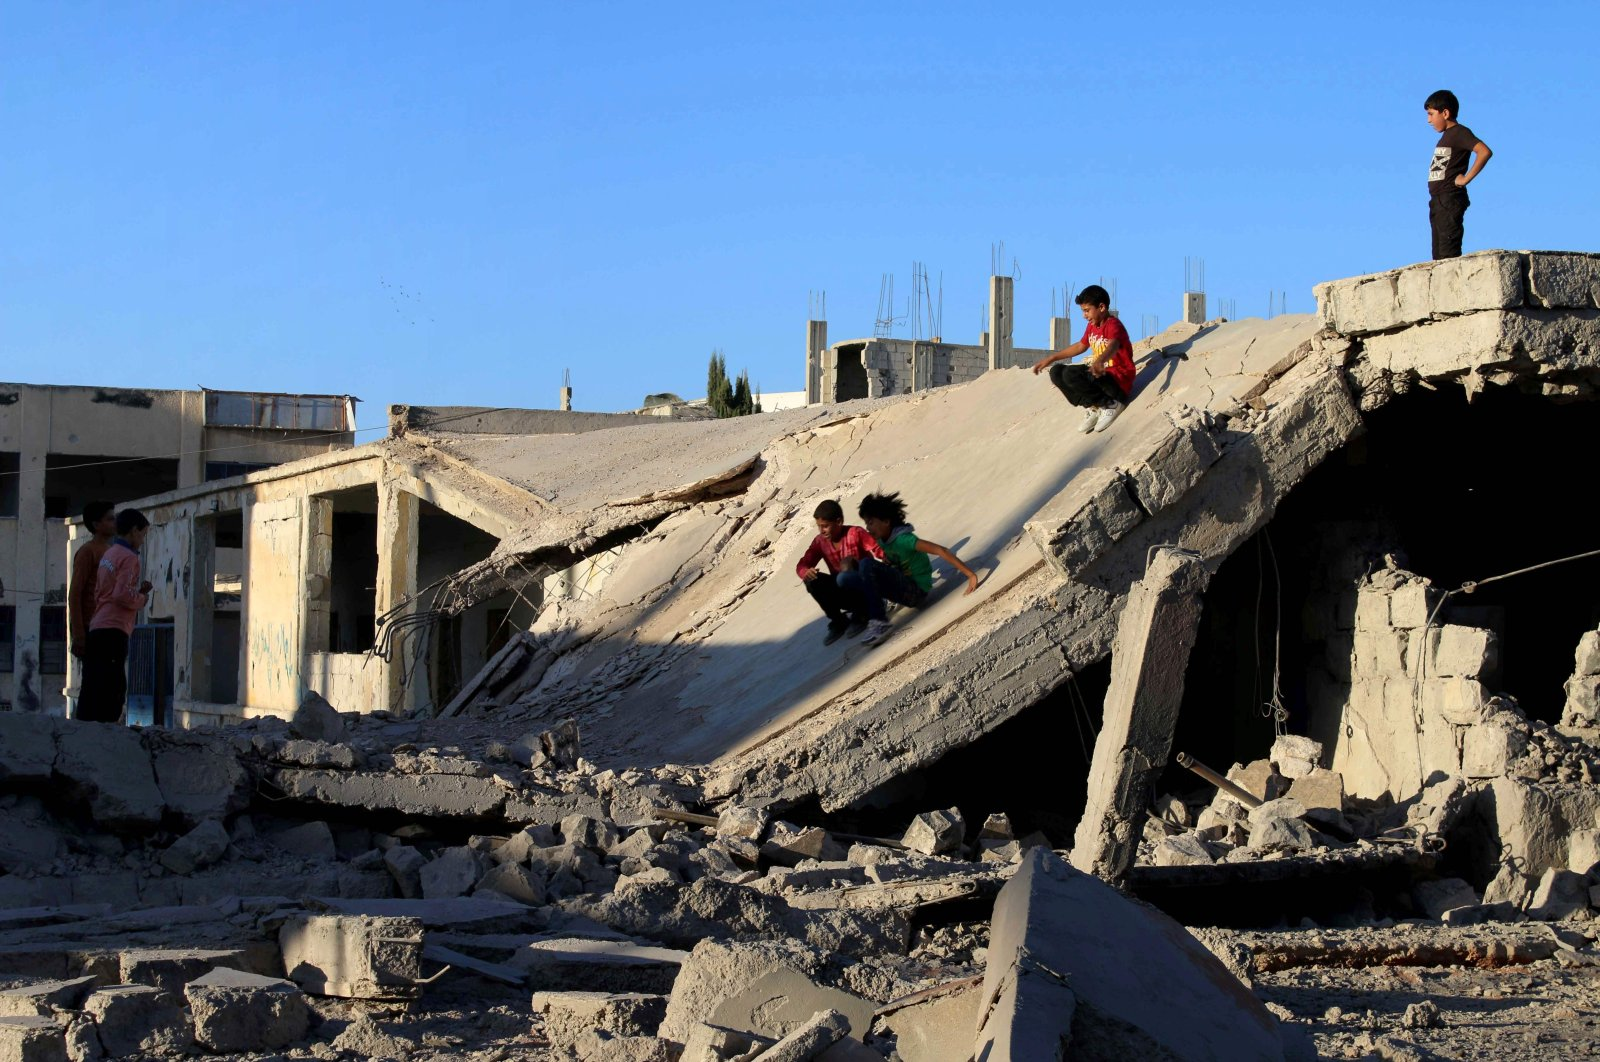 Syrian children slide down the rubble of destroyed a building in the opposition-held city of Daraa, in southwestern Syria, Sept. 12, 2016. (AFP File Photo)